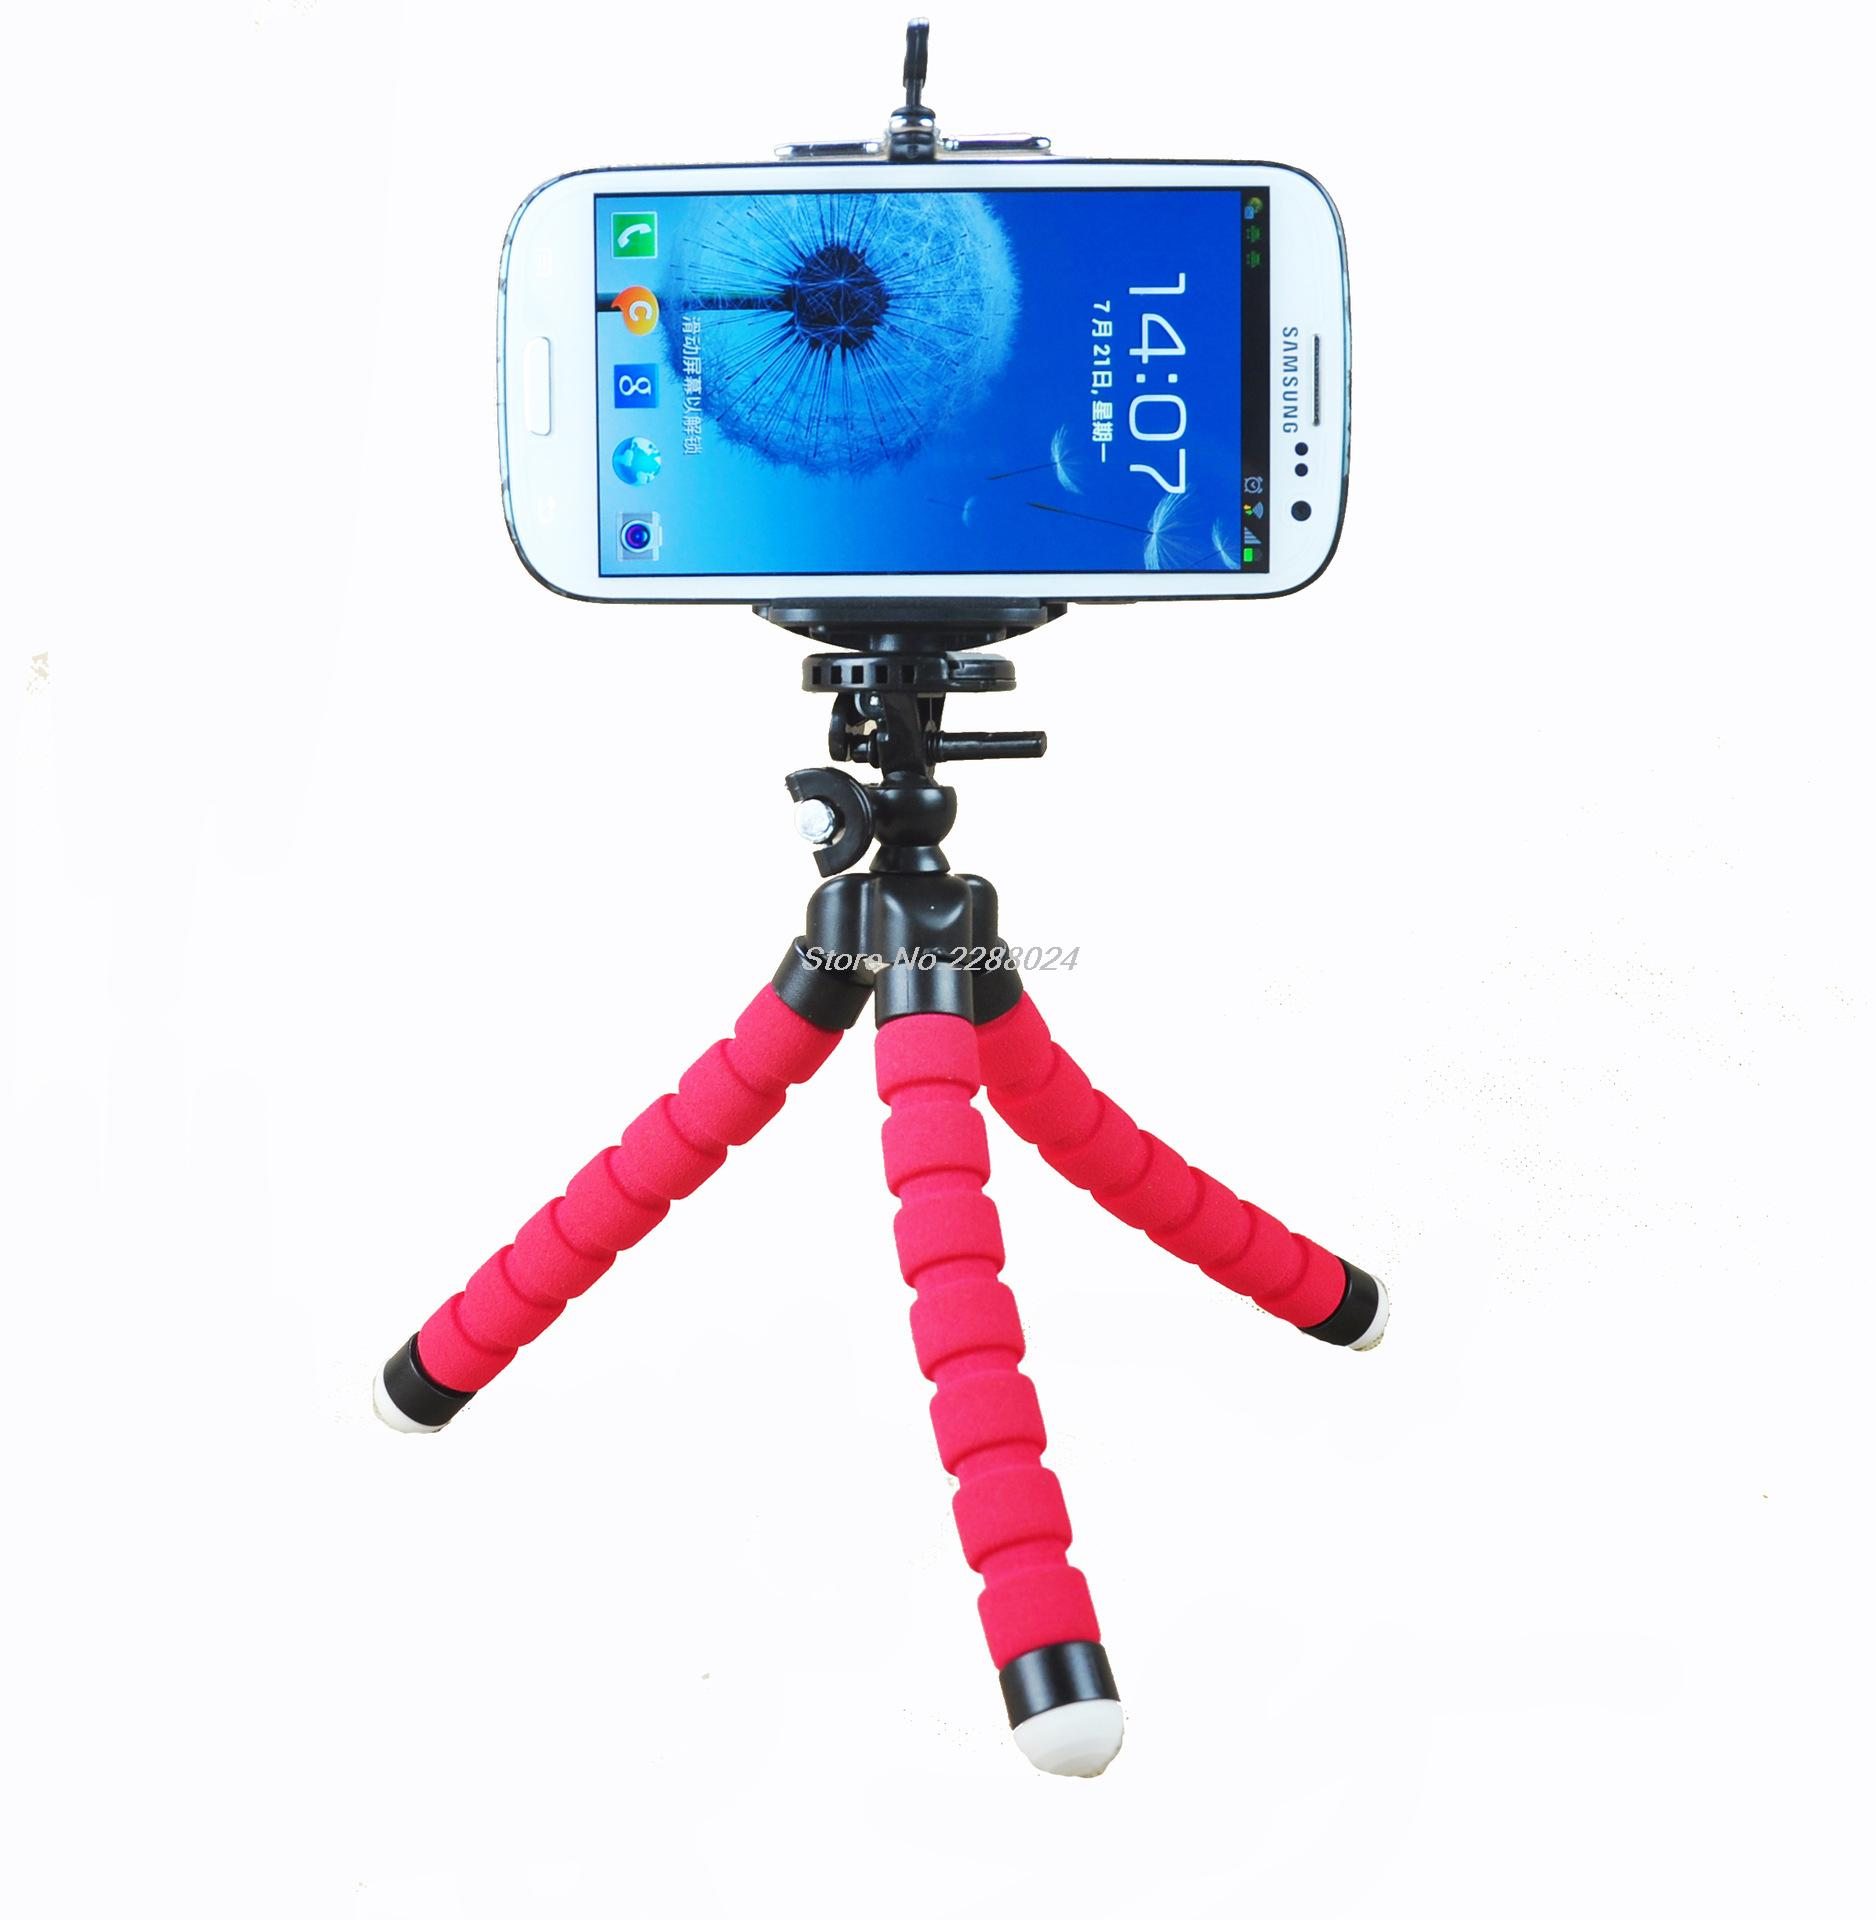 Hot Sale Car Phone Holder Flexible Octopus Tripod For Samsung Galaxy J1 Mini J105f/ J120/ J510/ J310/J710 2016 J3 J5 J7 C5 C7